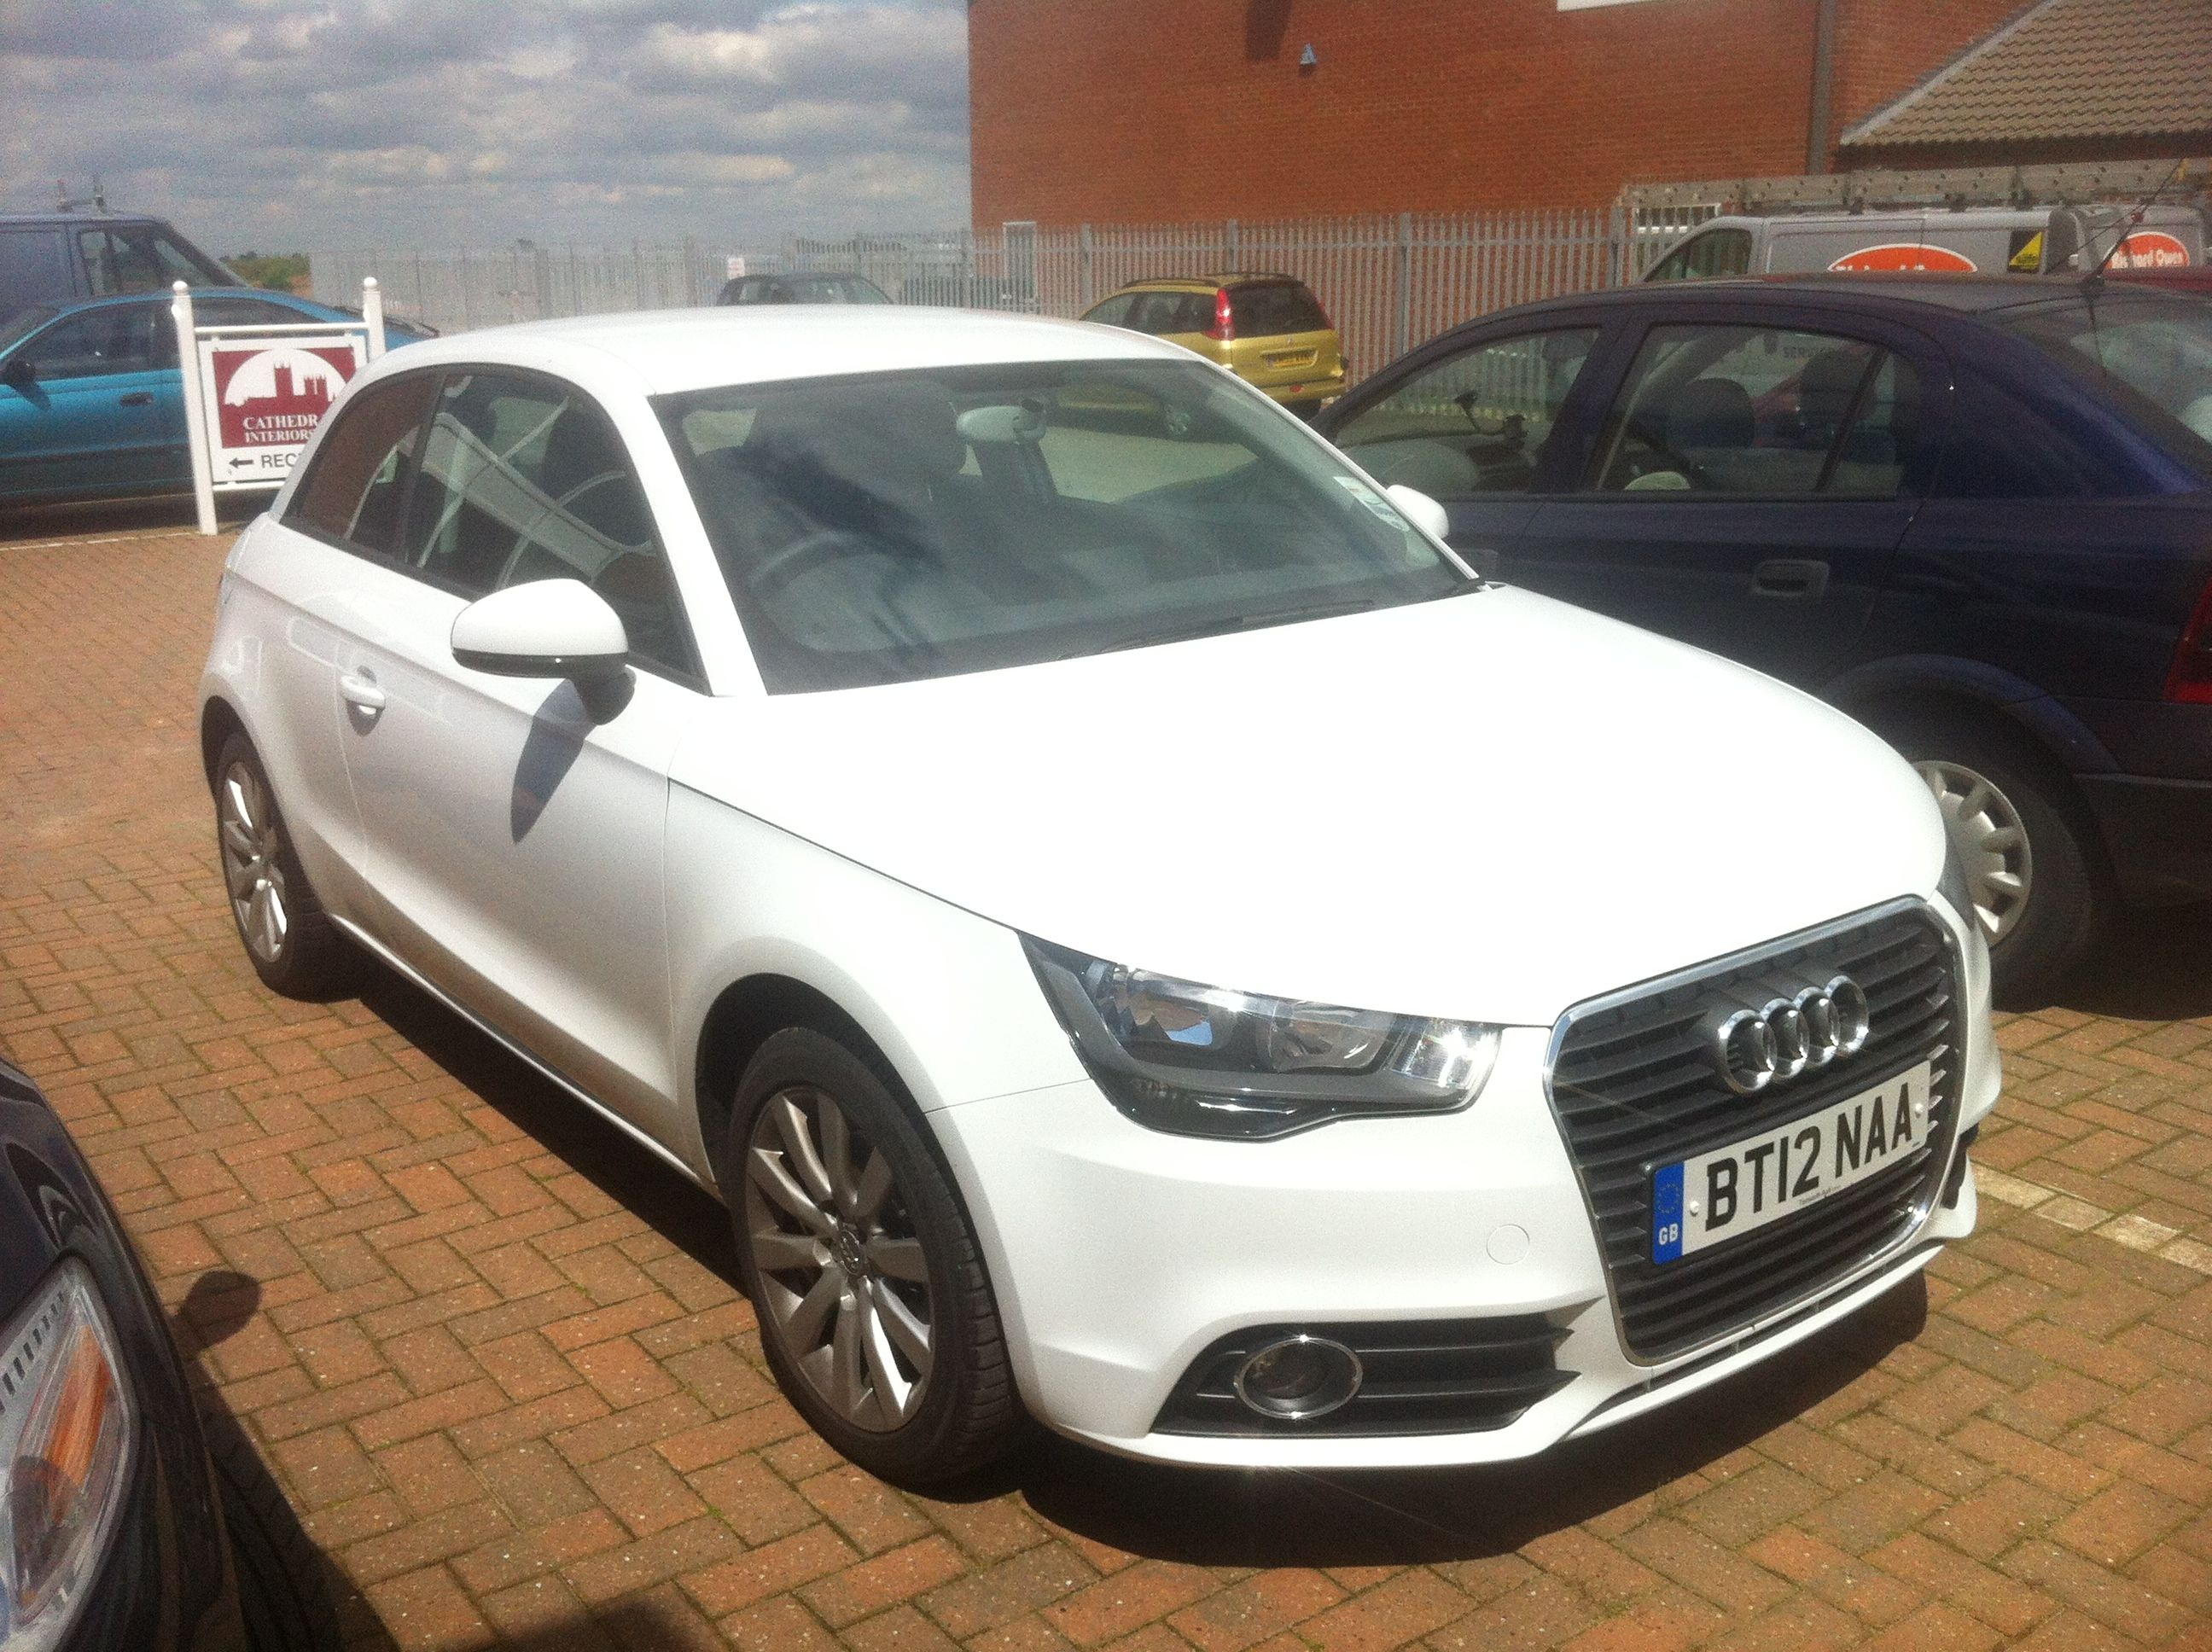 Audi A1 Carleasing Deal Looking Loverly In Glacier White For